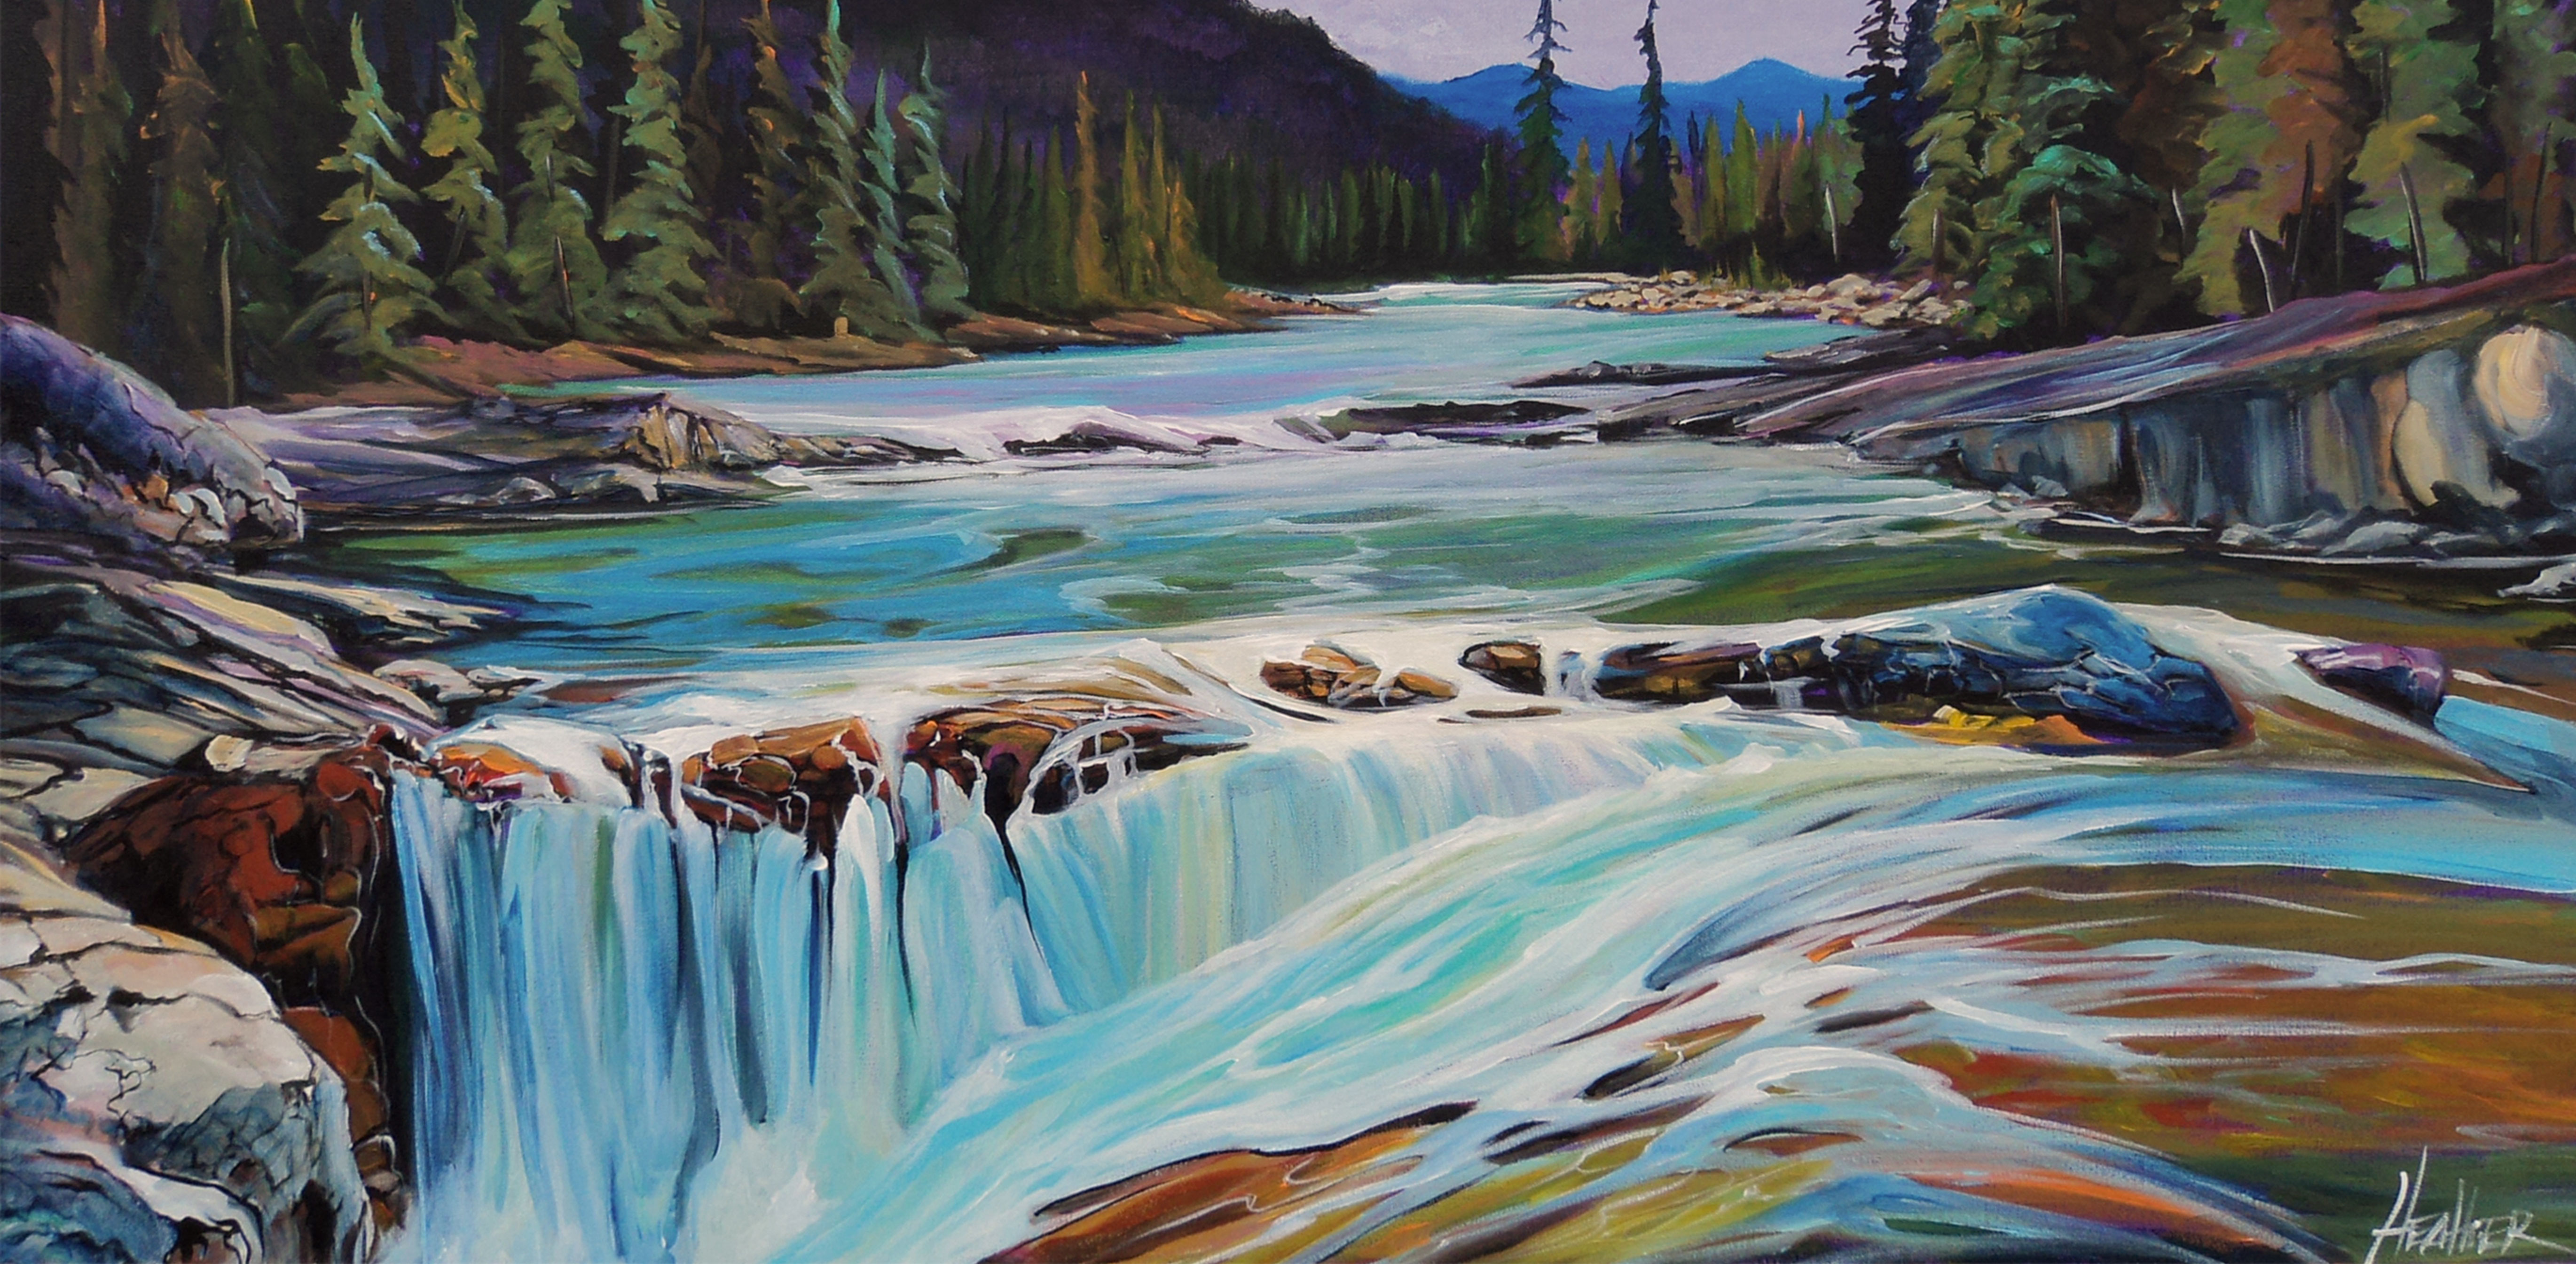 Elbow Falls Metamorphic 24 X 48 SOLD